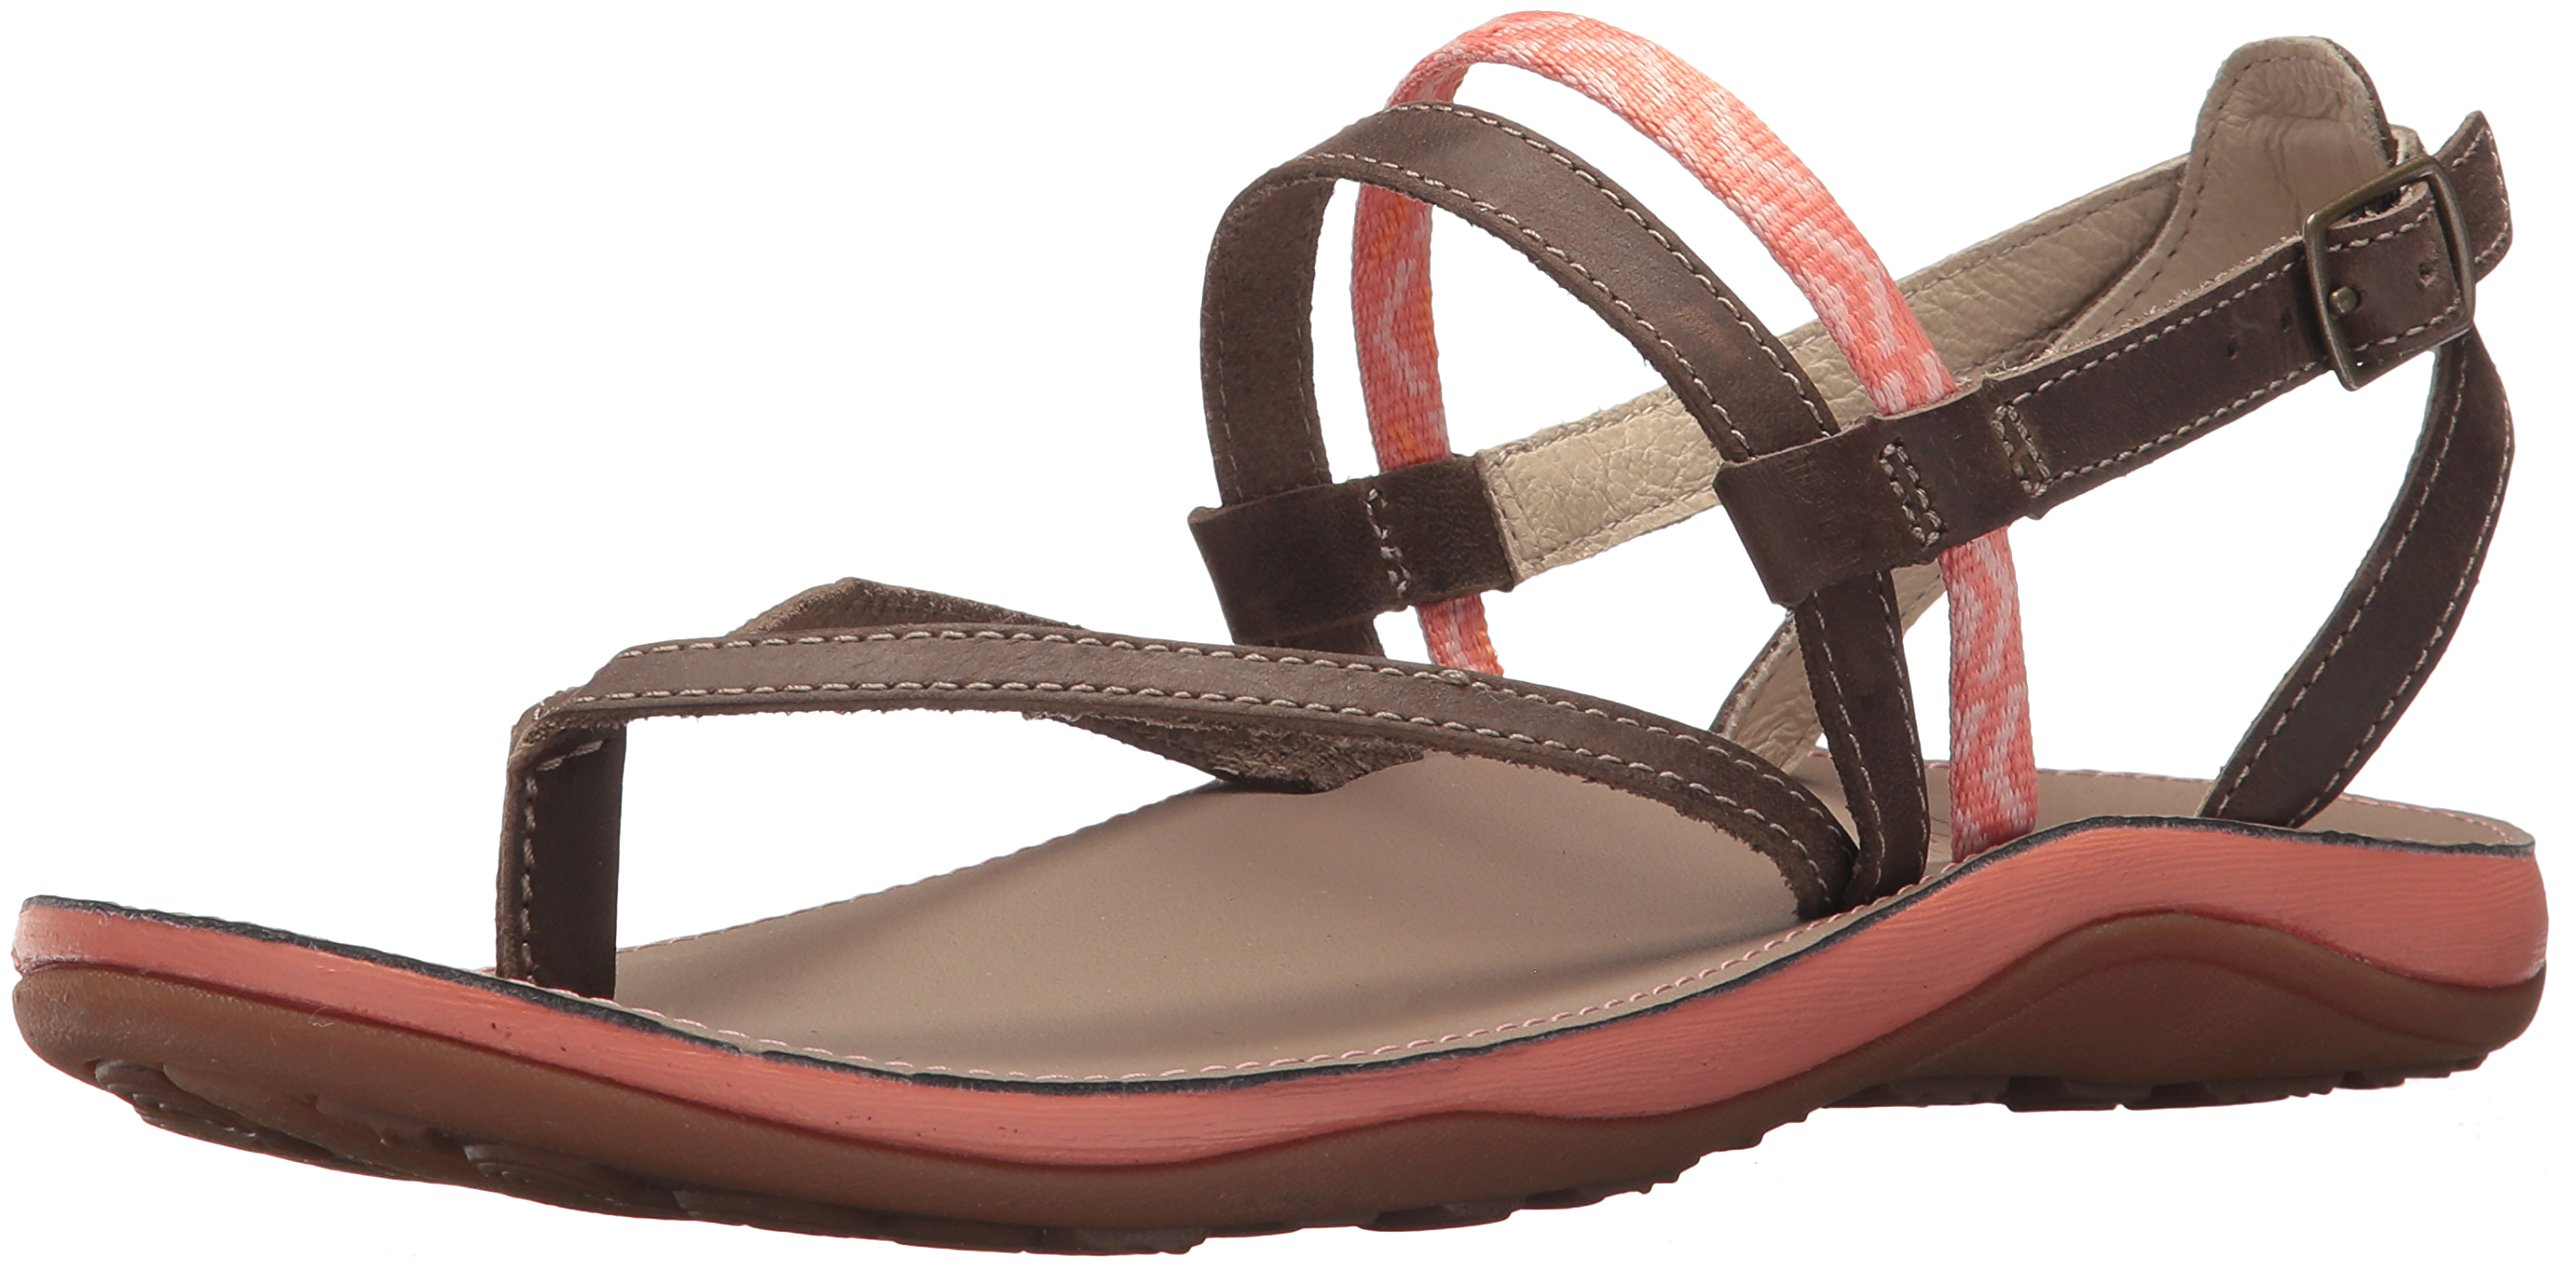 Chaco Women's Loveland Sandal, Stepped Peach, 7 Medium US by Chaco